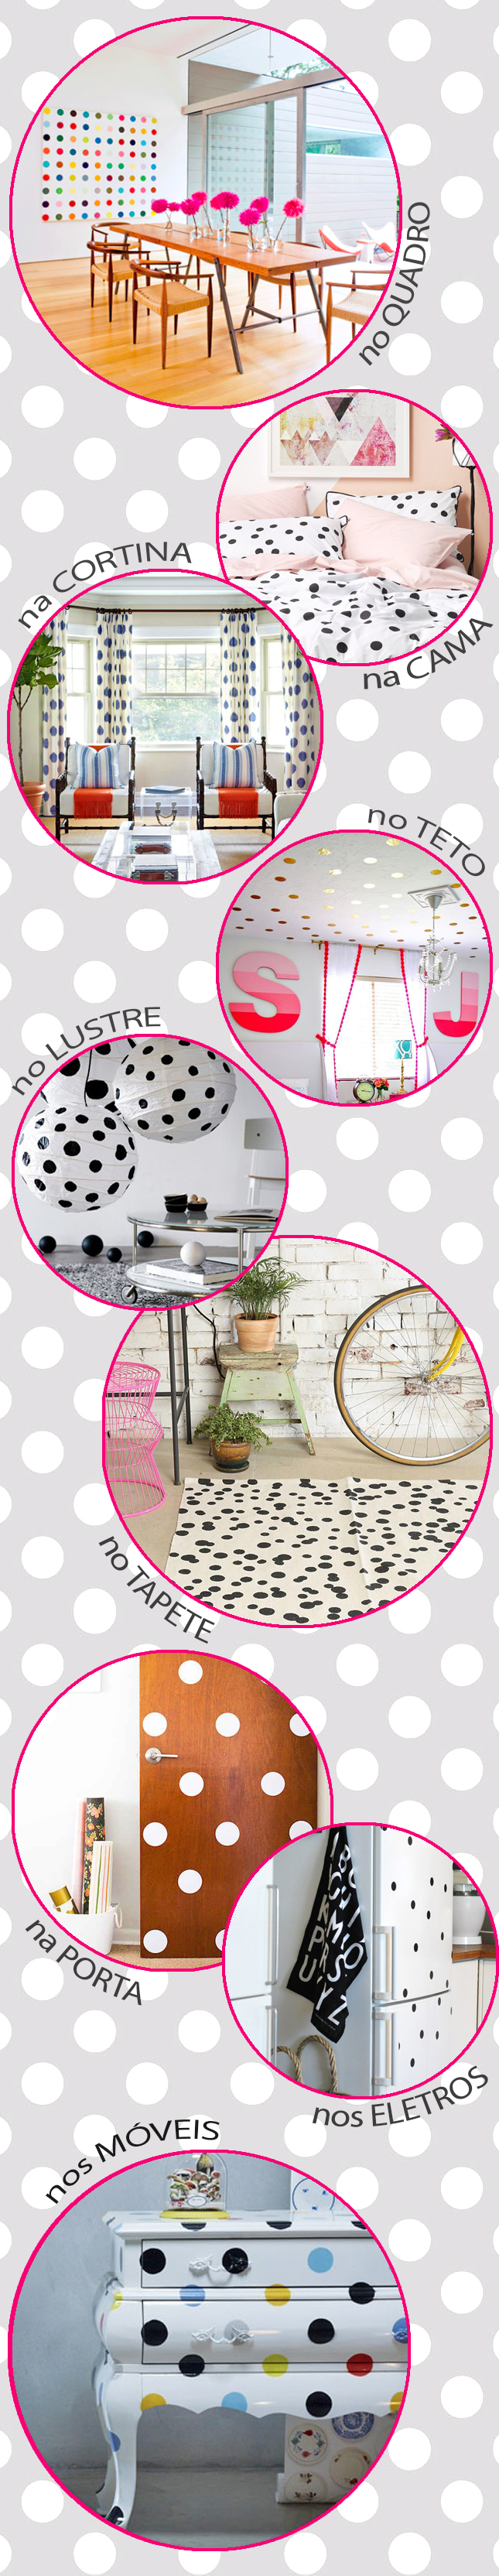 decoradornet-casa-polka-dot-01